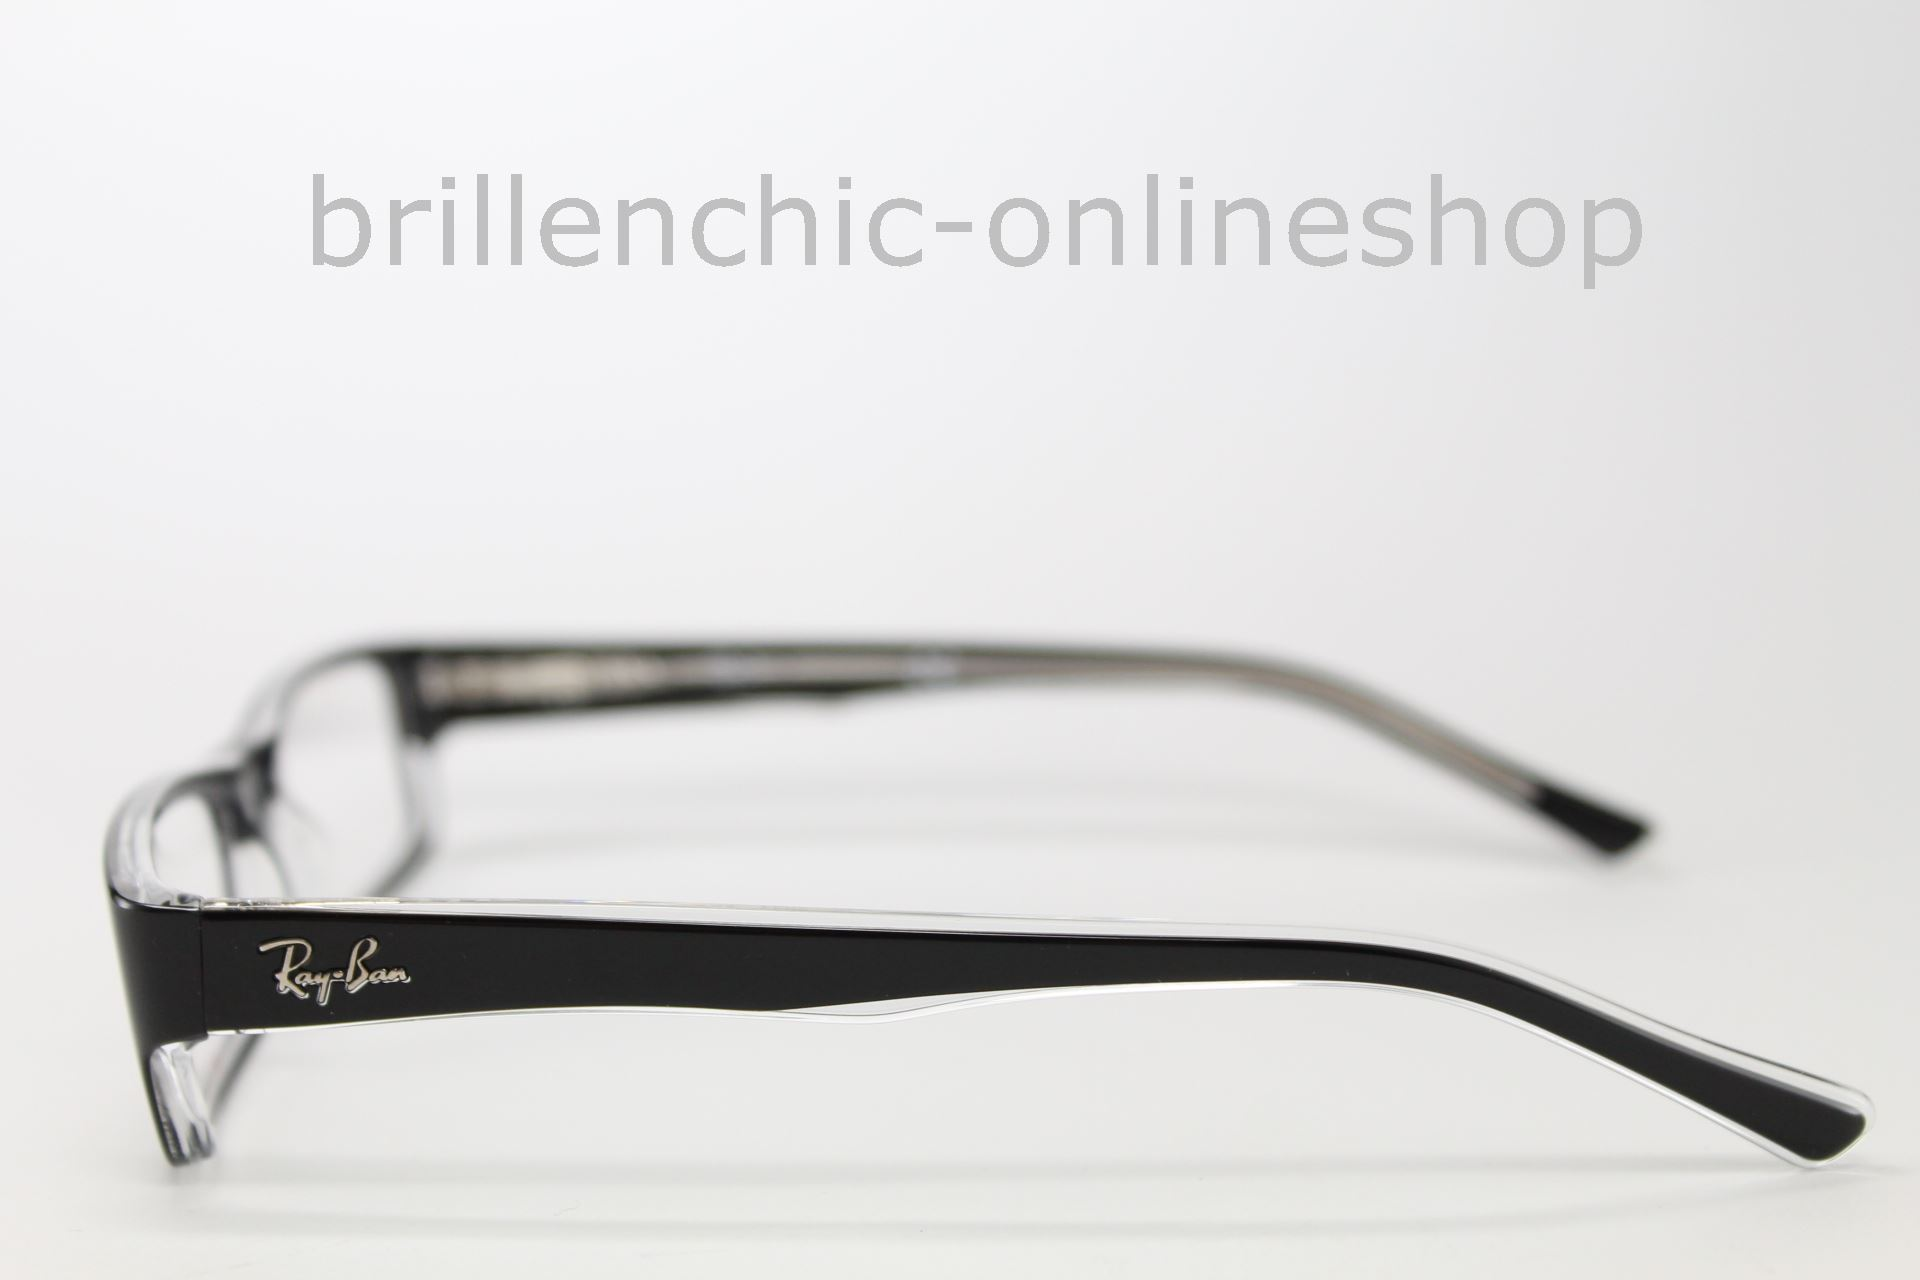 acfdc587e4 Brillenchic-onlineshop in Berlin - Ray Ban RB 5246 2034